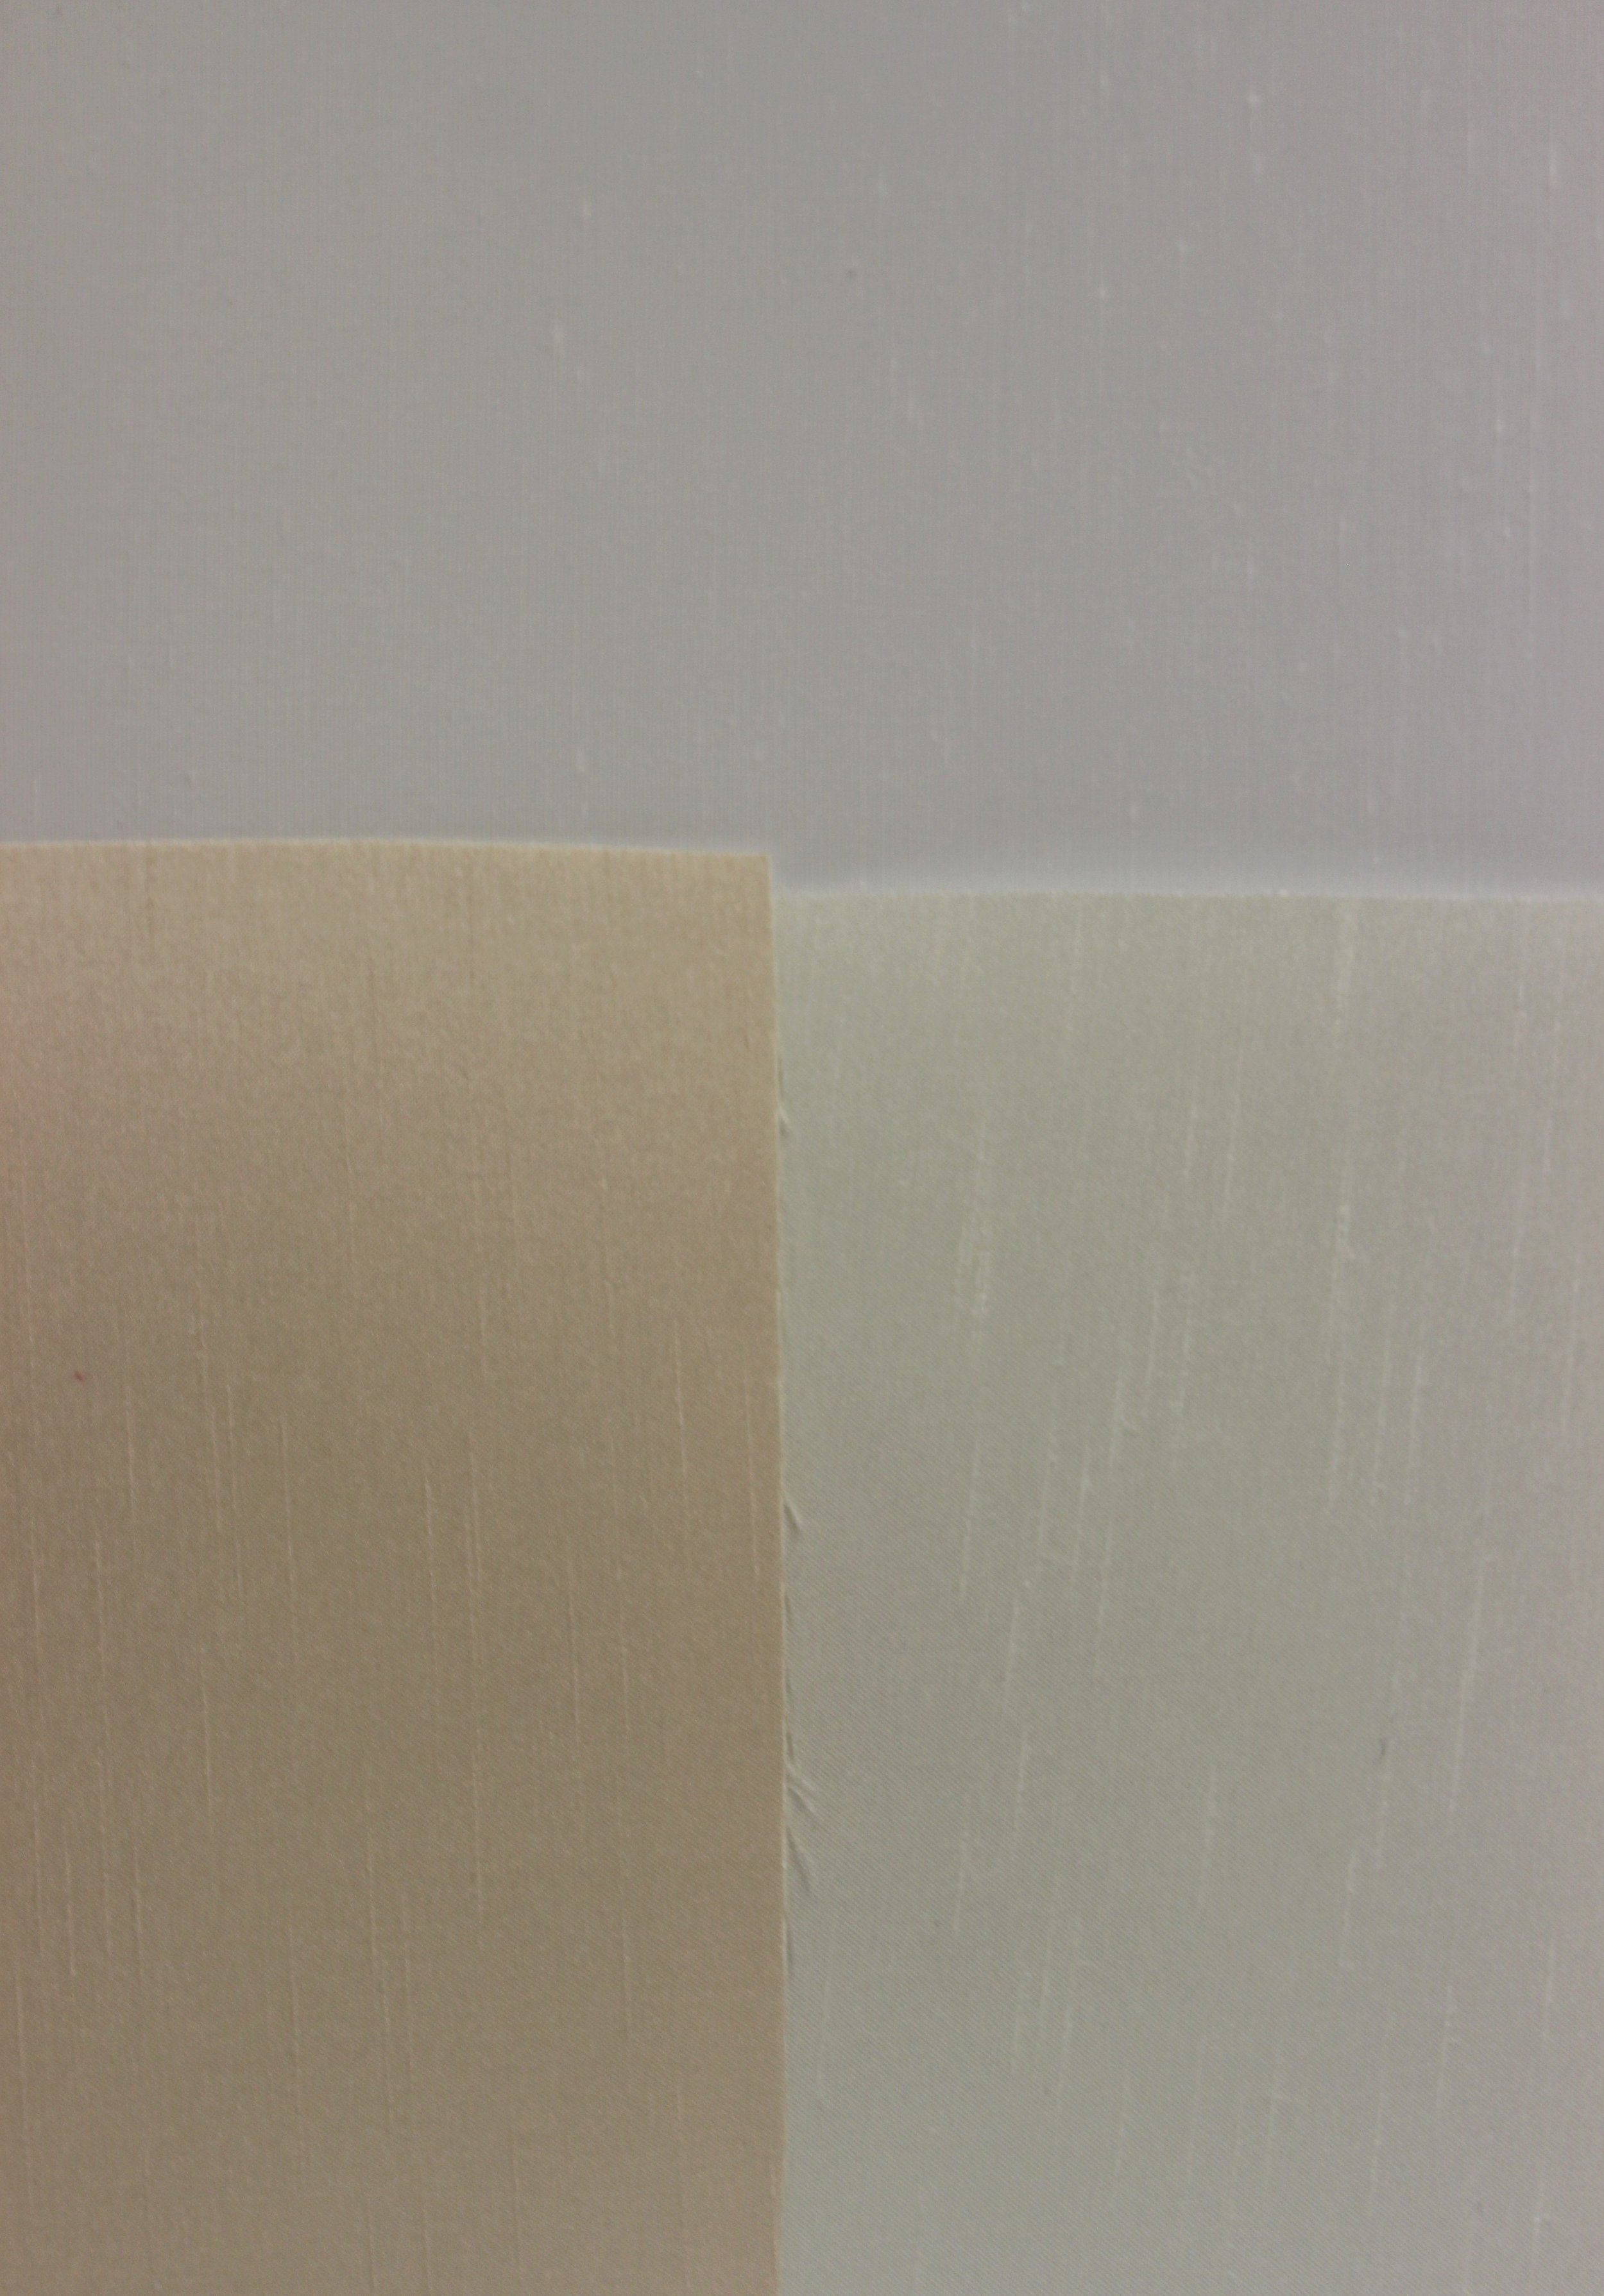 #101` White (top) #101 Eggshell (bottom right) & #101 Bamboo (bottom left) - Side by Side Comparison